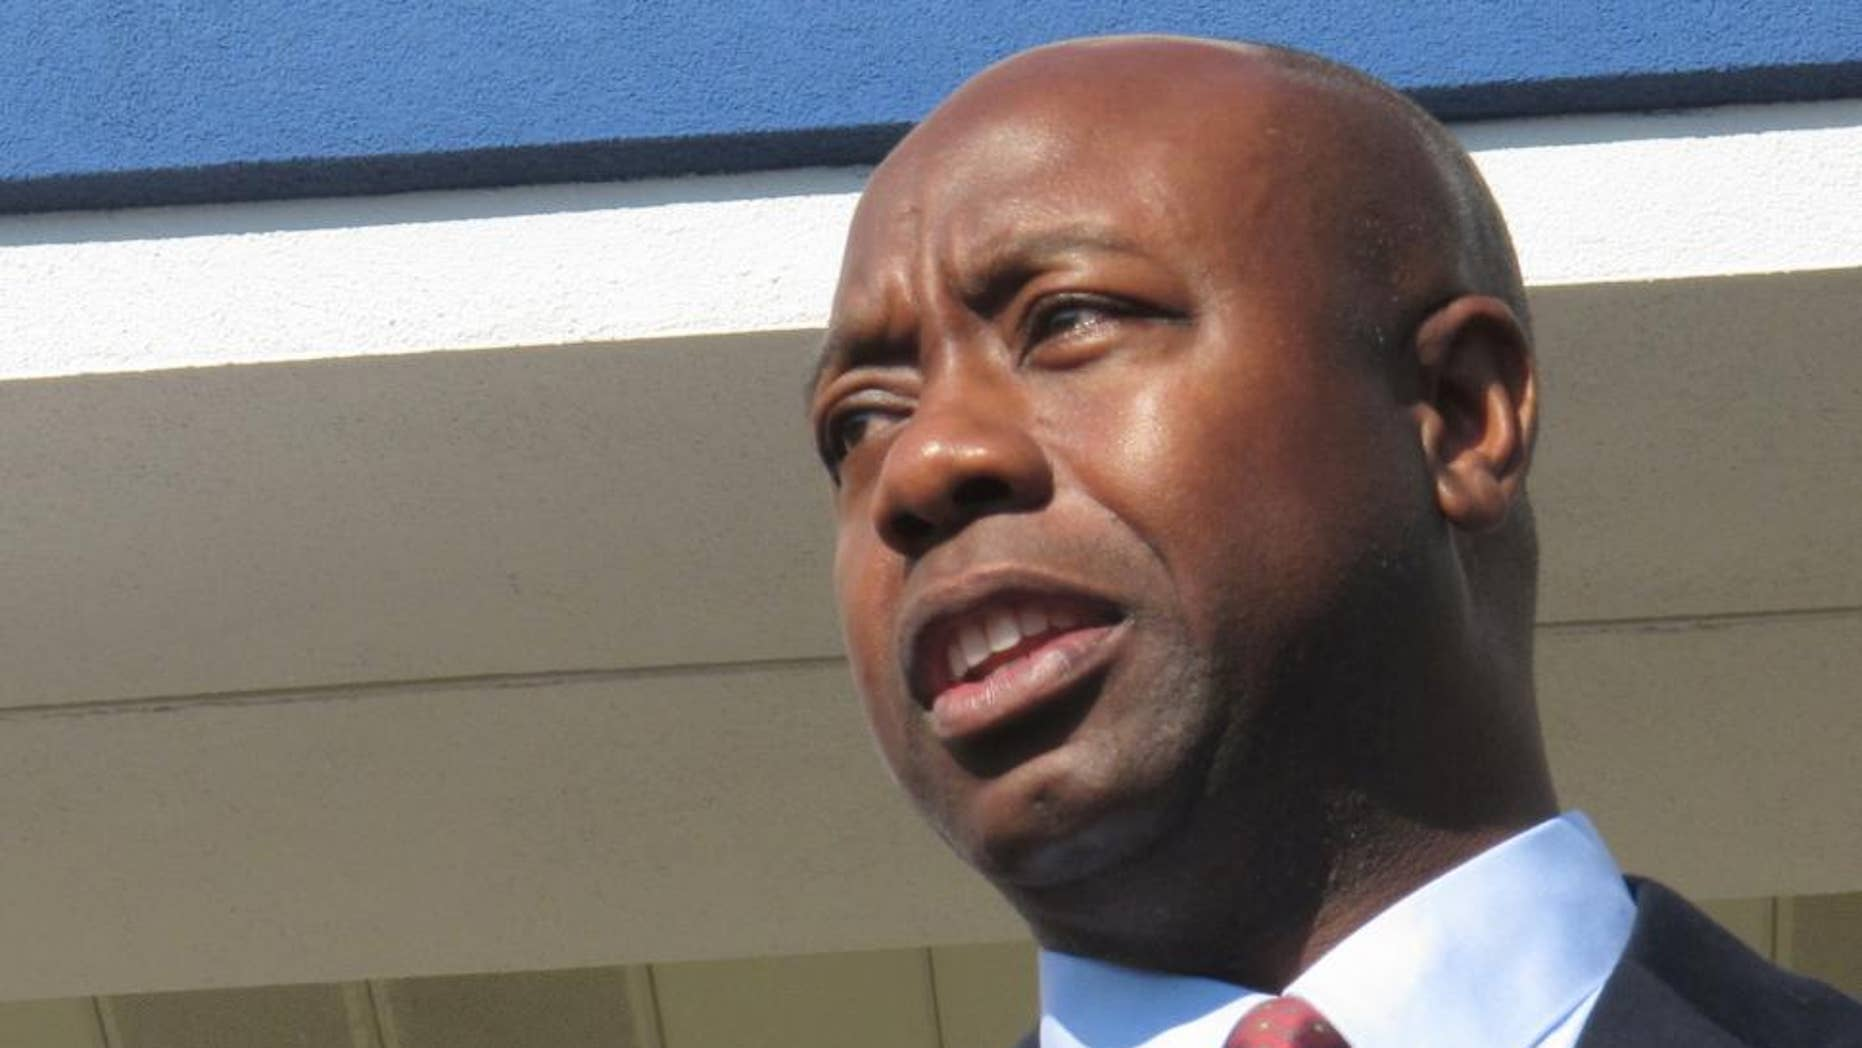 In an Oct. 19, 2010 photo, Tim Scott, Republican candidate for the U.S. House in South Carolina's 1st District, speaks to a crownd during a campaign event in North Charleston, S.C. (AP Photo/Bruce Smith)